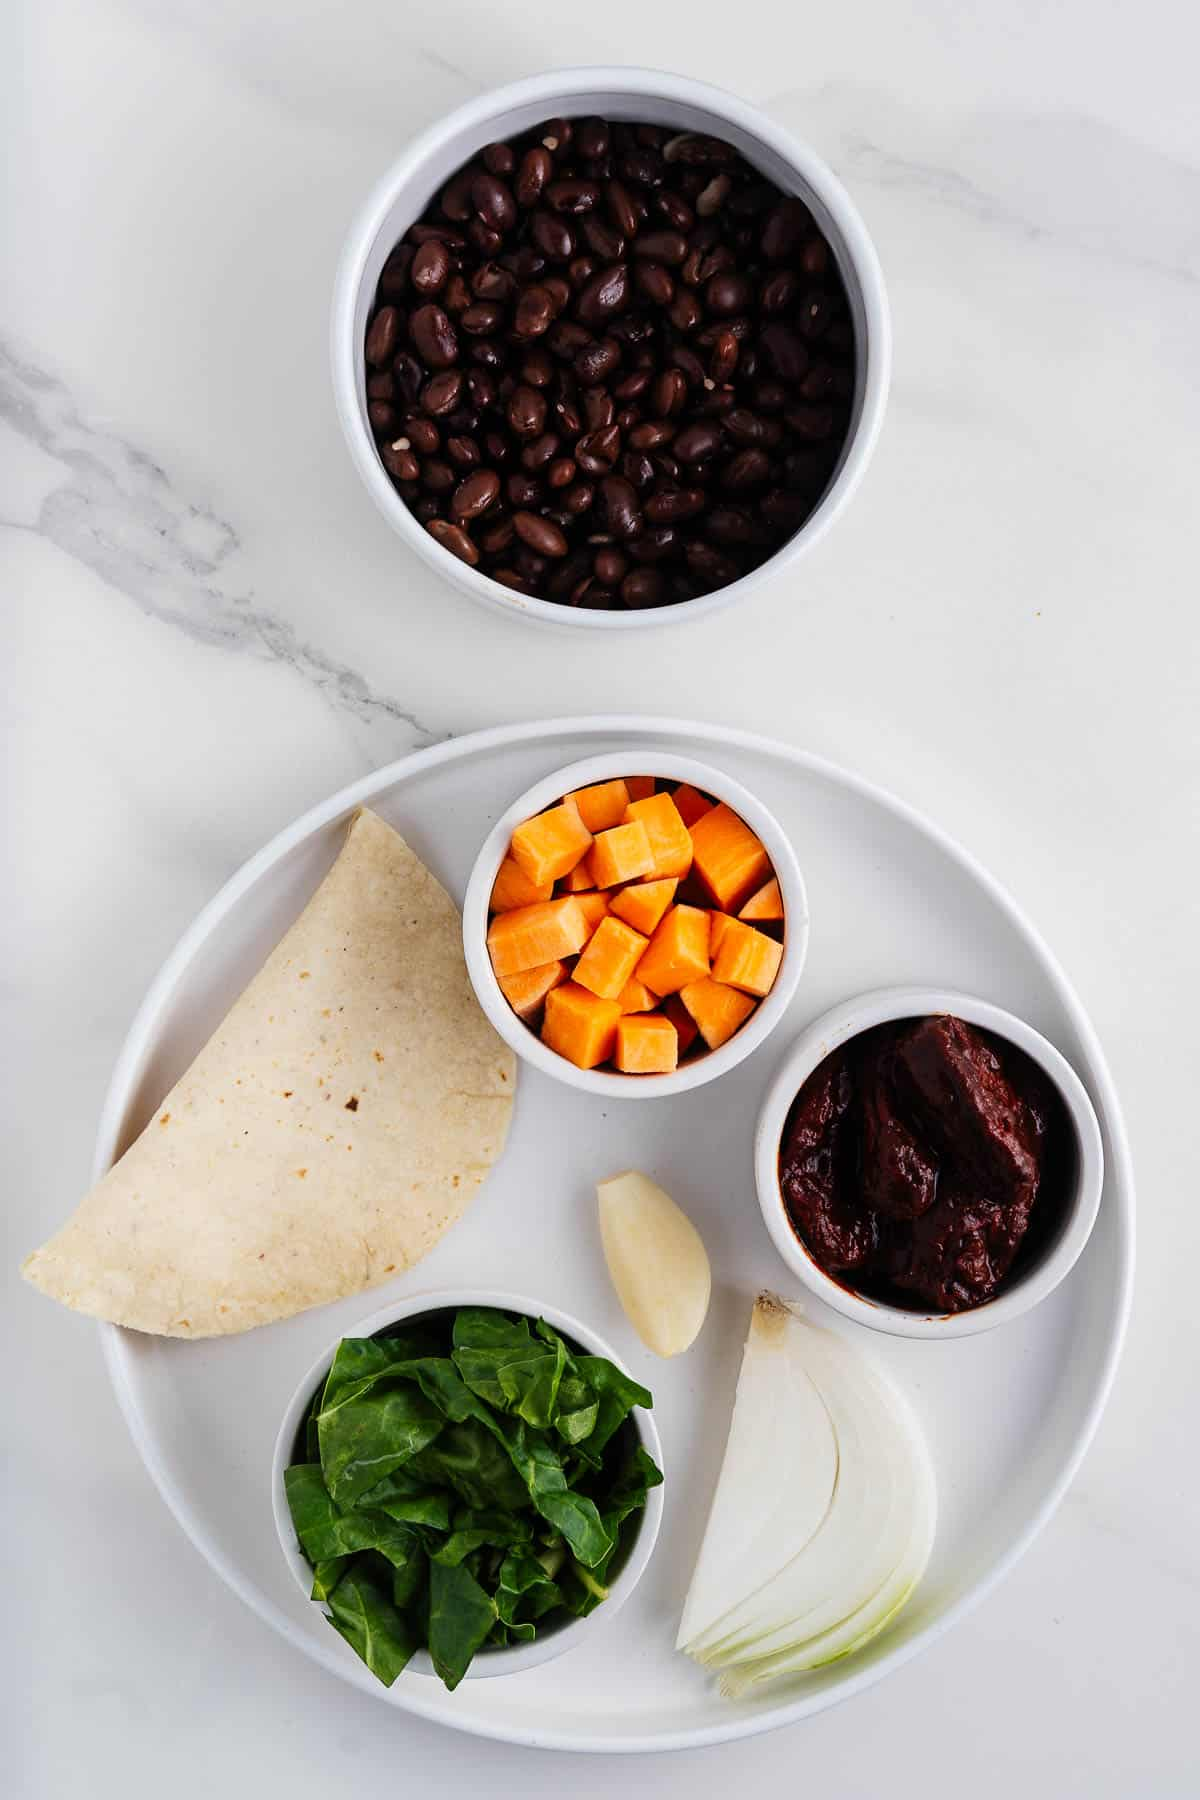 Black Beans, Sweet Potatoes, Collard Greens, Chipotle Peppers in Adobo, Corn Tortilla, Garlic Clove, and White Onion